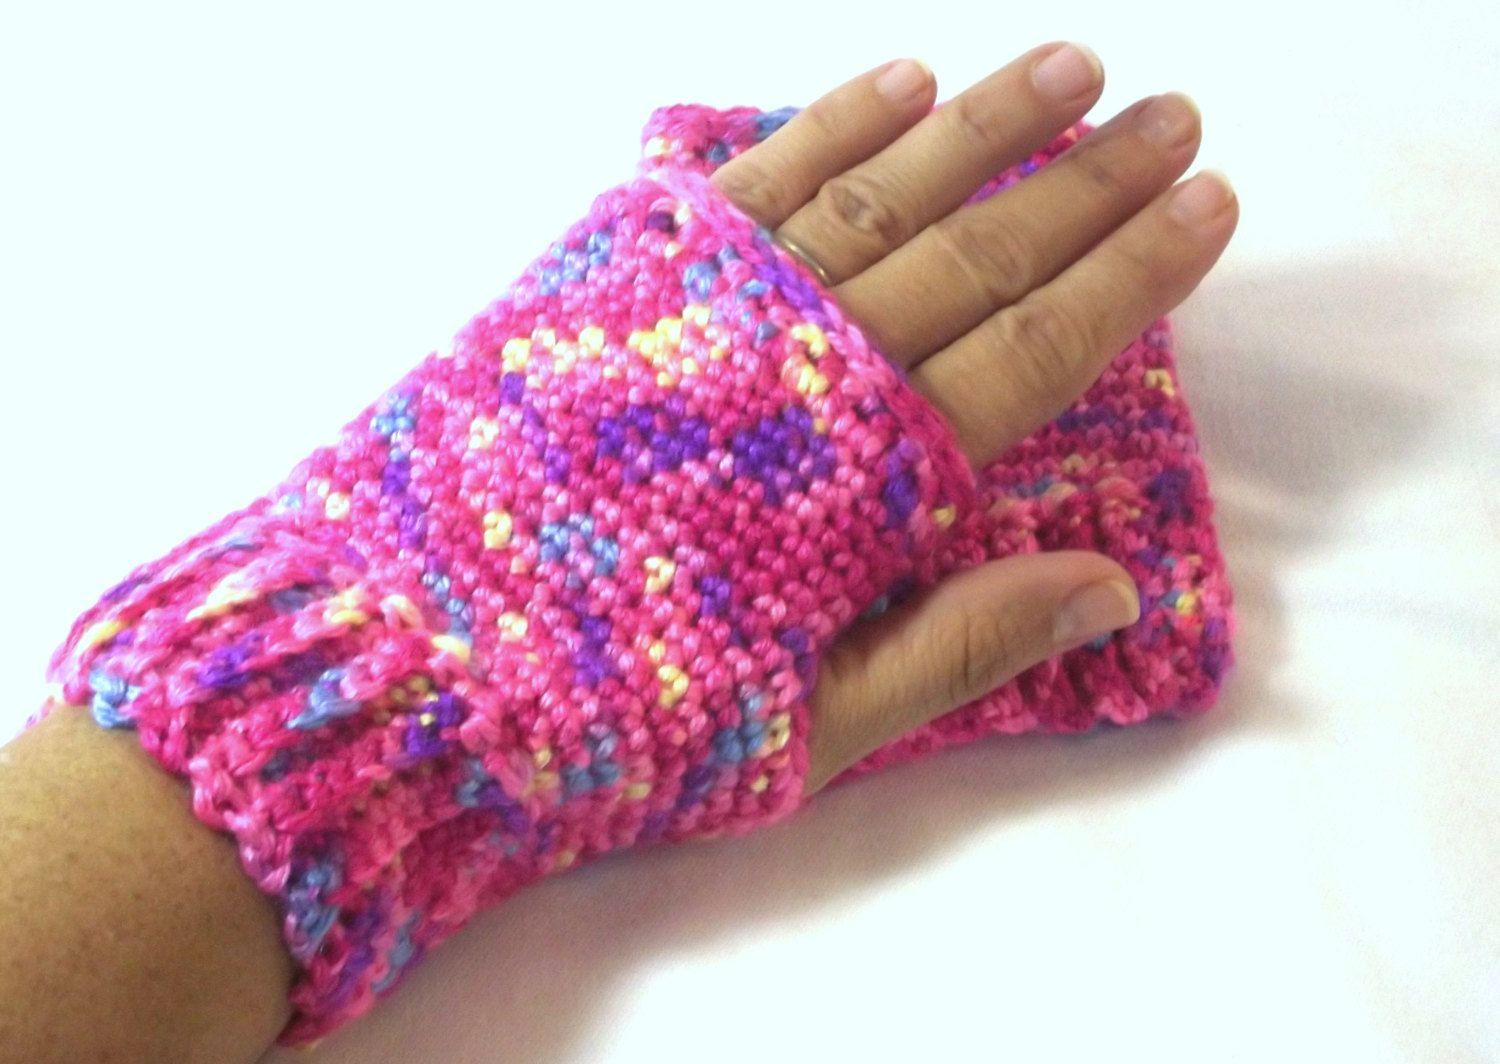 Driving gloves for arthritic hands - Hand Wrist Warmer Driving Glove Fingerless Gloves Handmade Mitten Fingerless Mitten Gift For Her Pink Glove Mitten